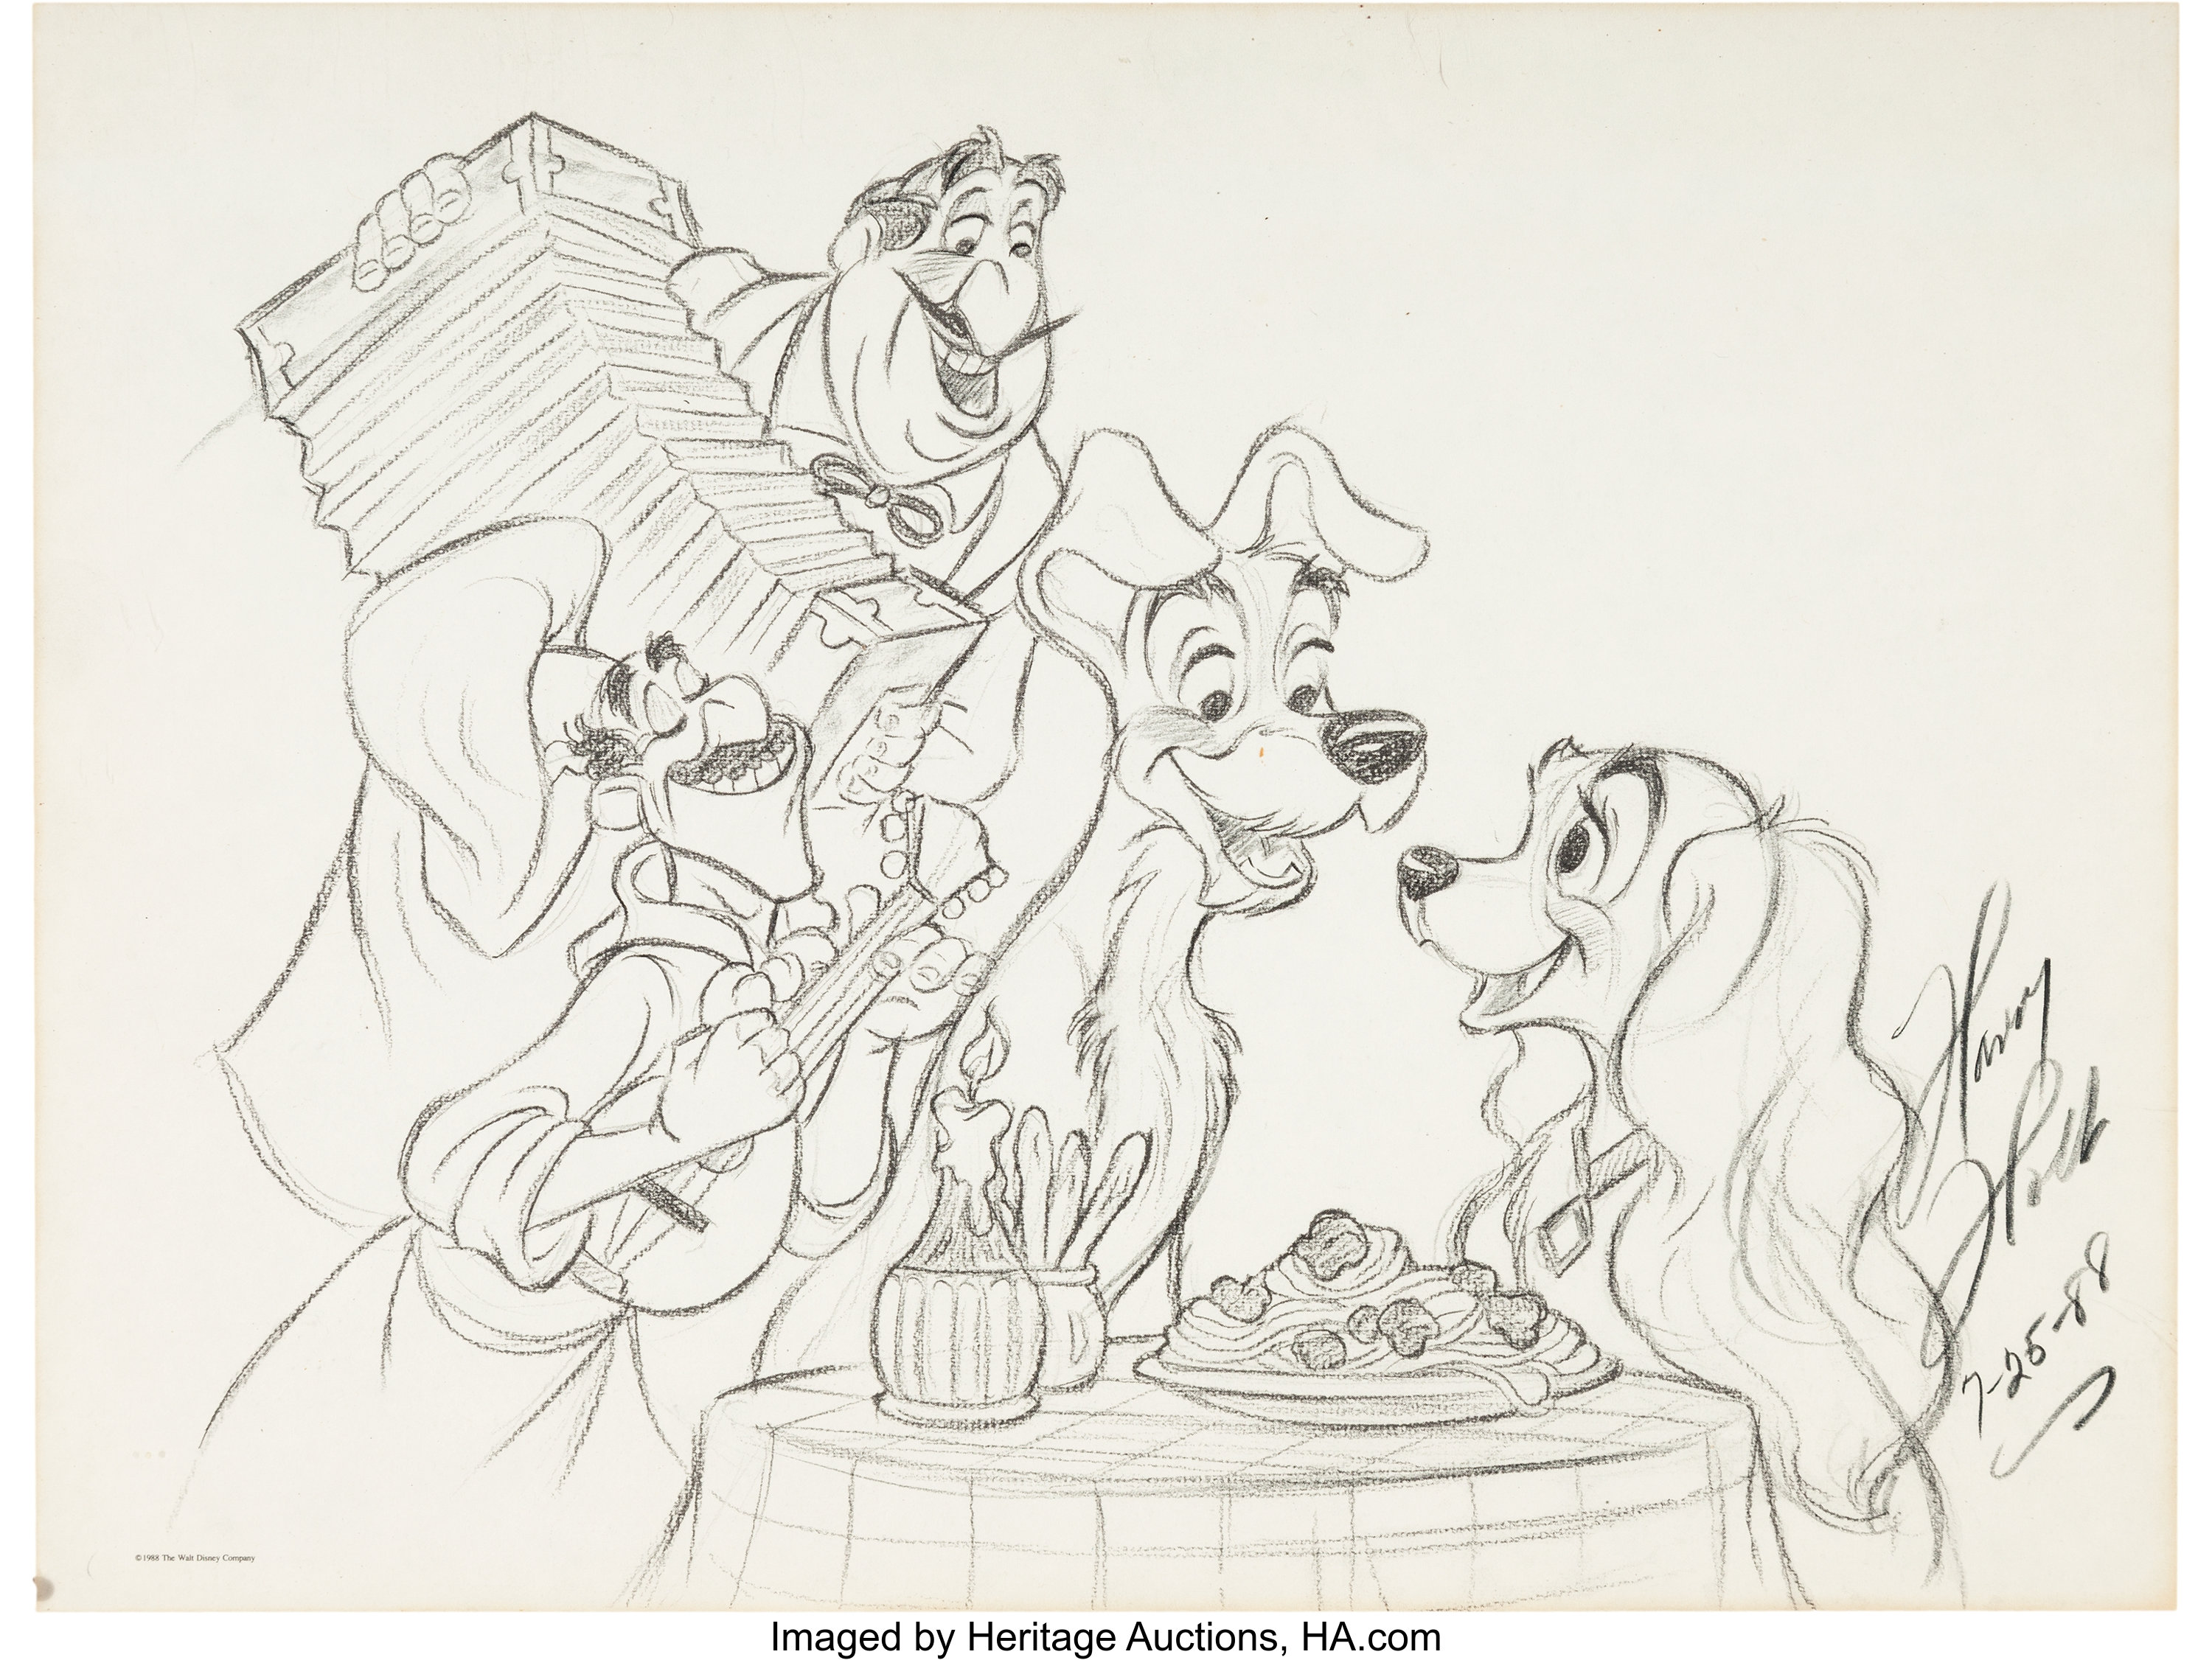 Lady And The Tramp Artwork By Harry Holt Walt Disney 1988 Lot 99590 Heritage Auctions